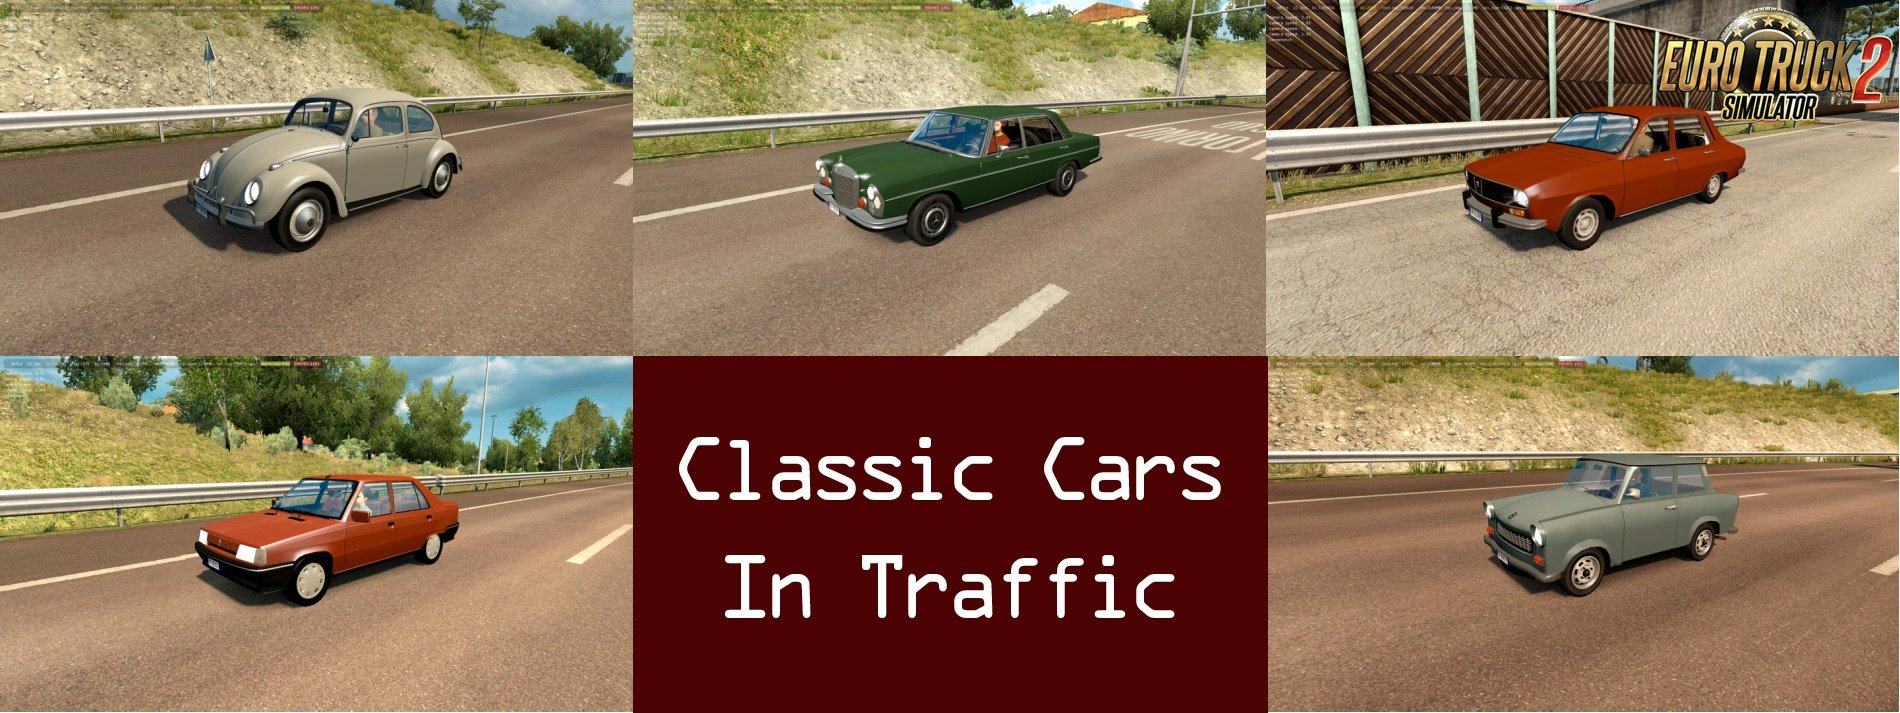 Classic Cars Traffic Pack v1.0 by TrafficManiac